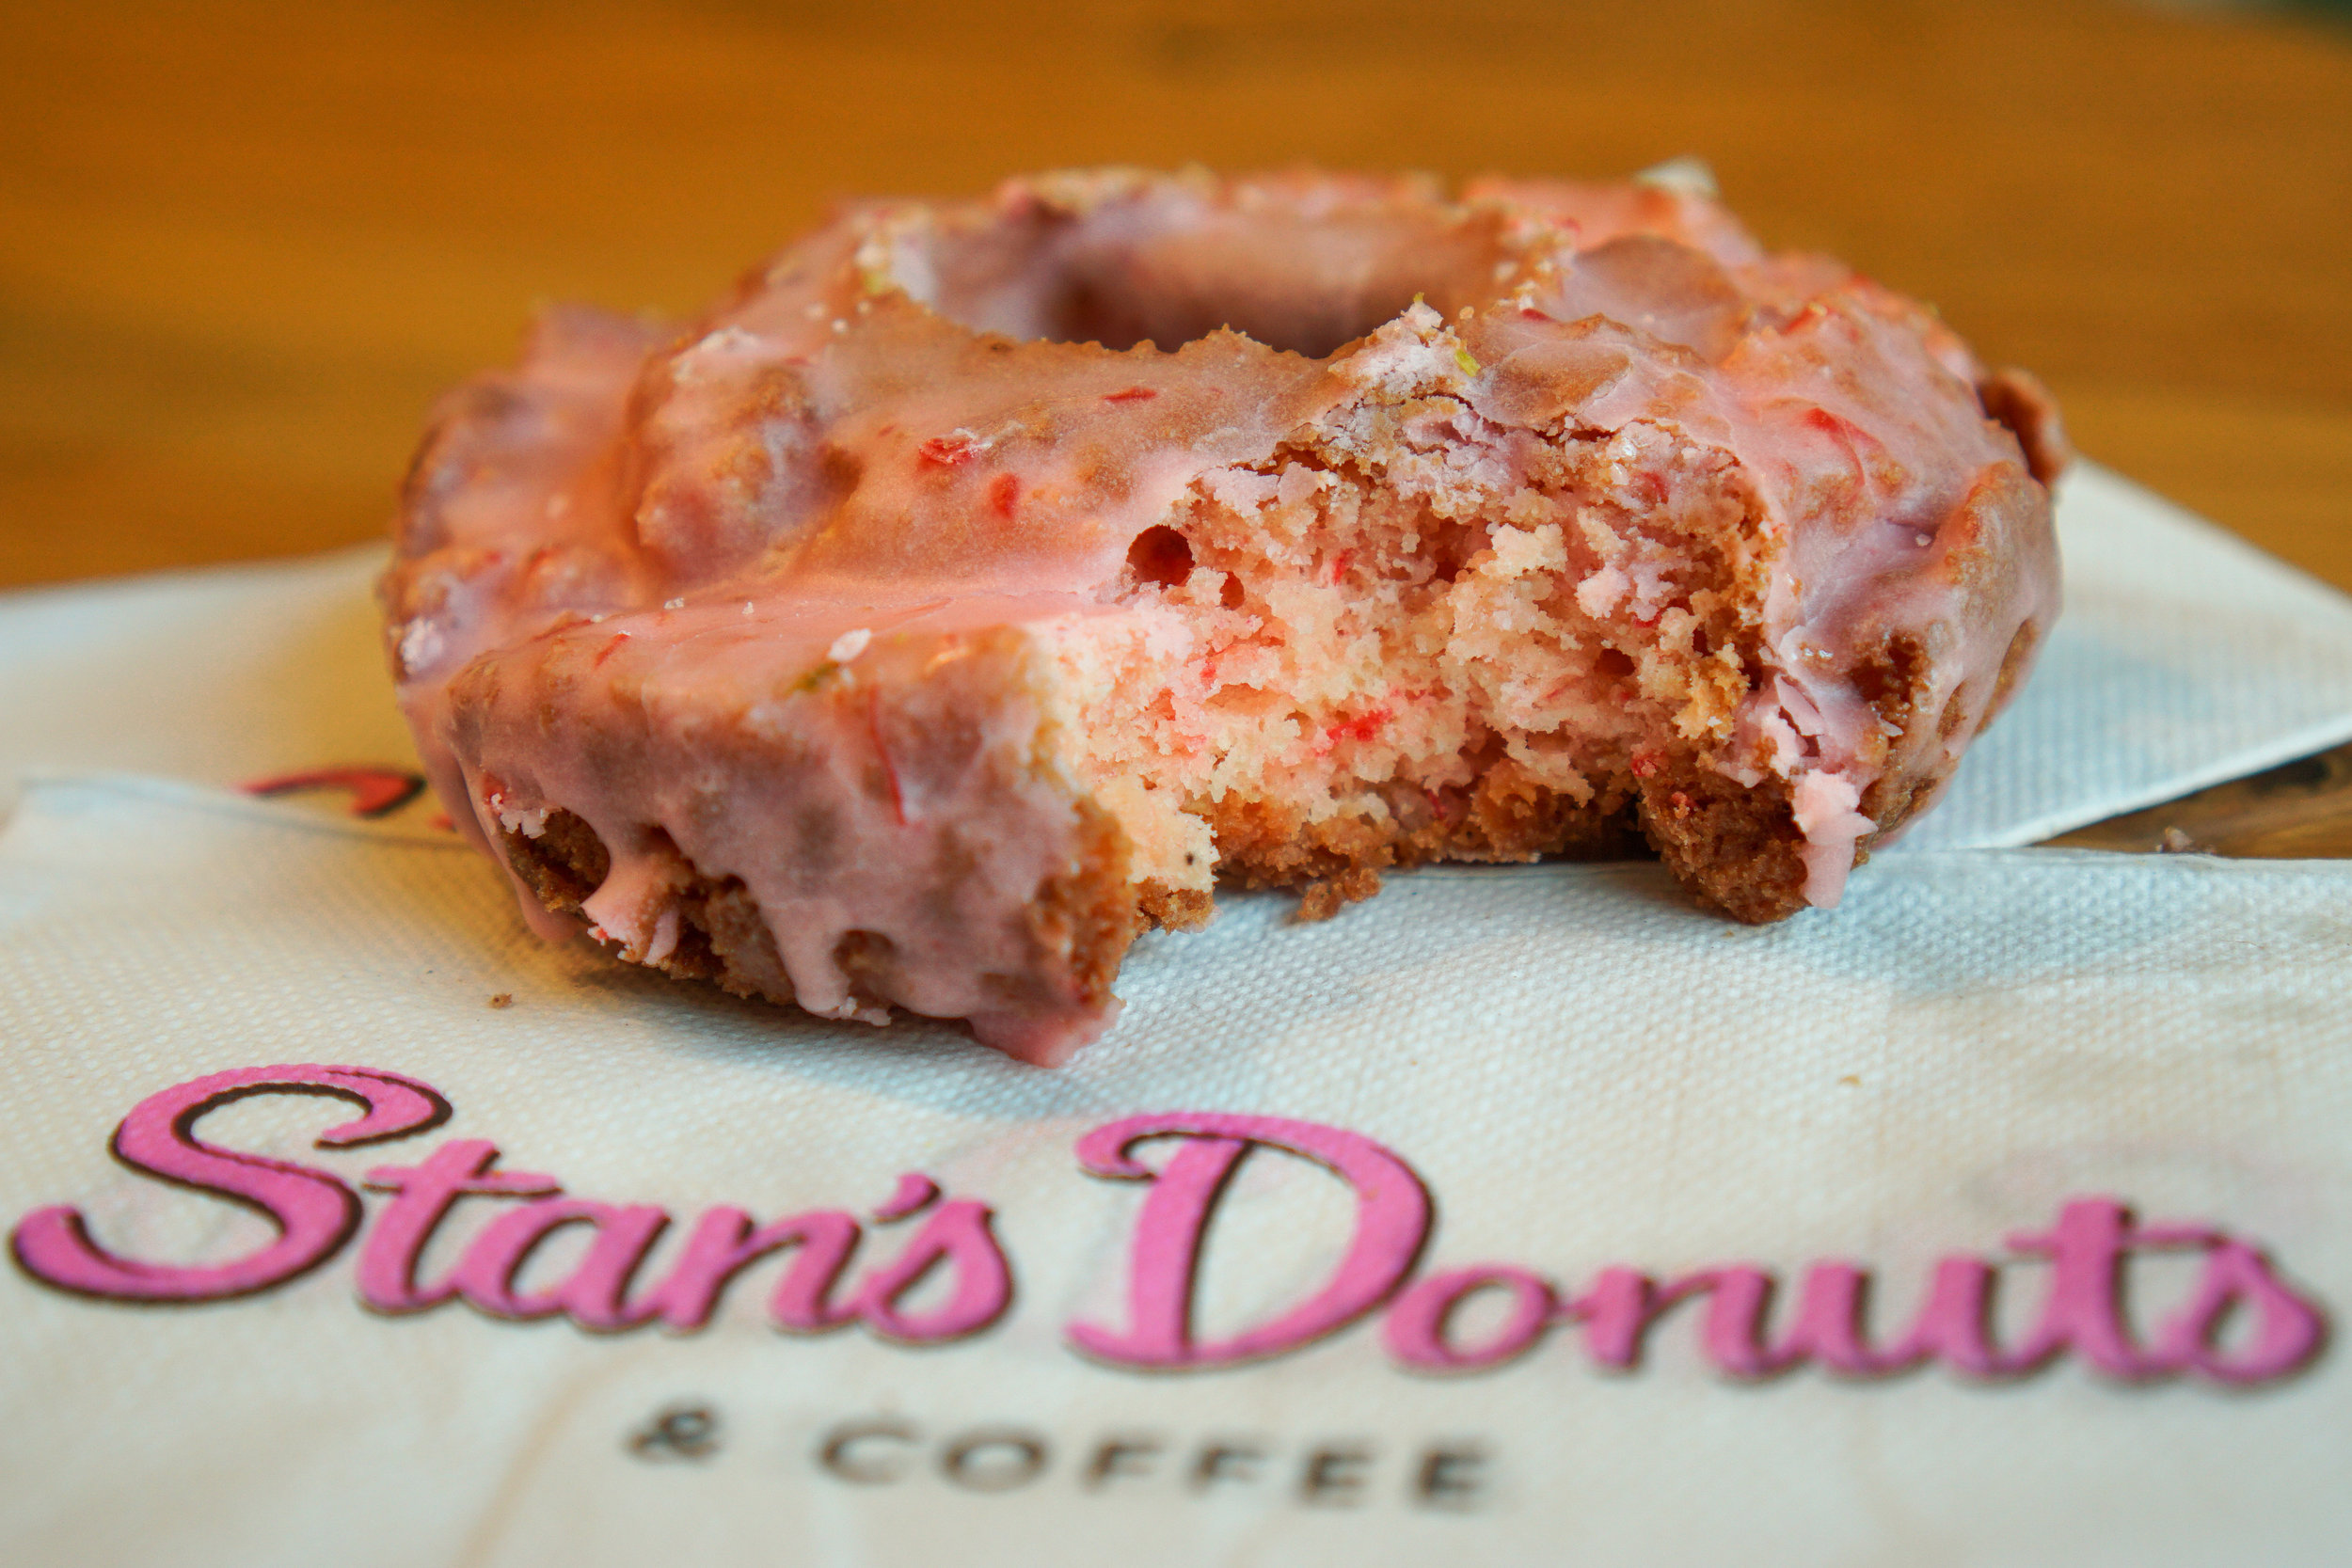 Strawberry old fashion from Stan's Donuts is always one of my go-to's when I can't decide.